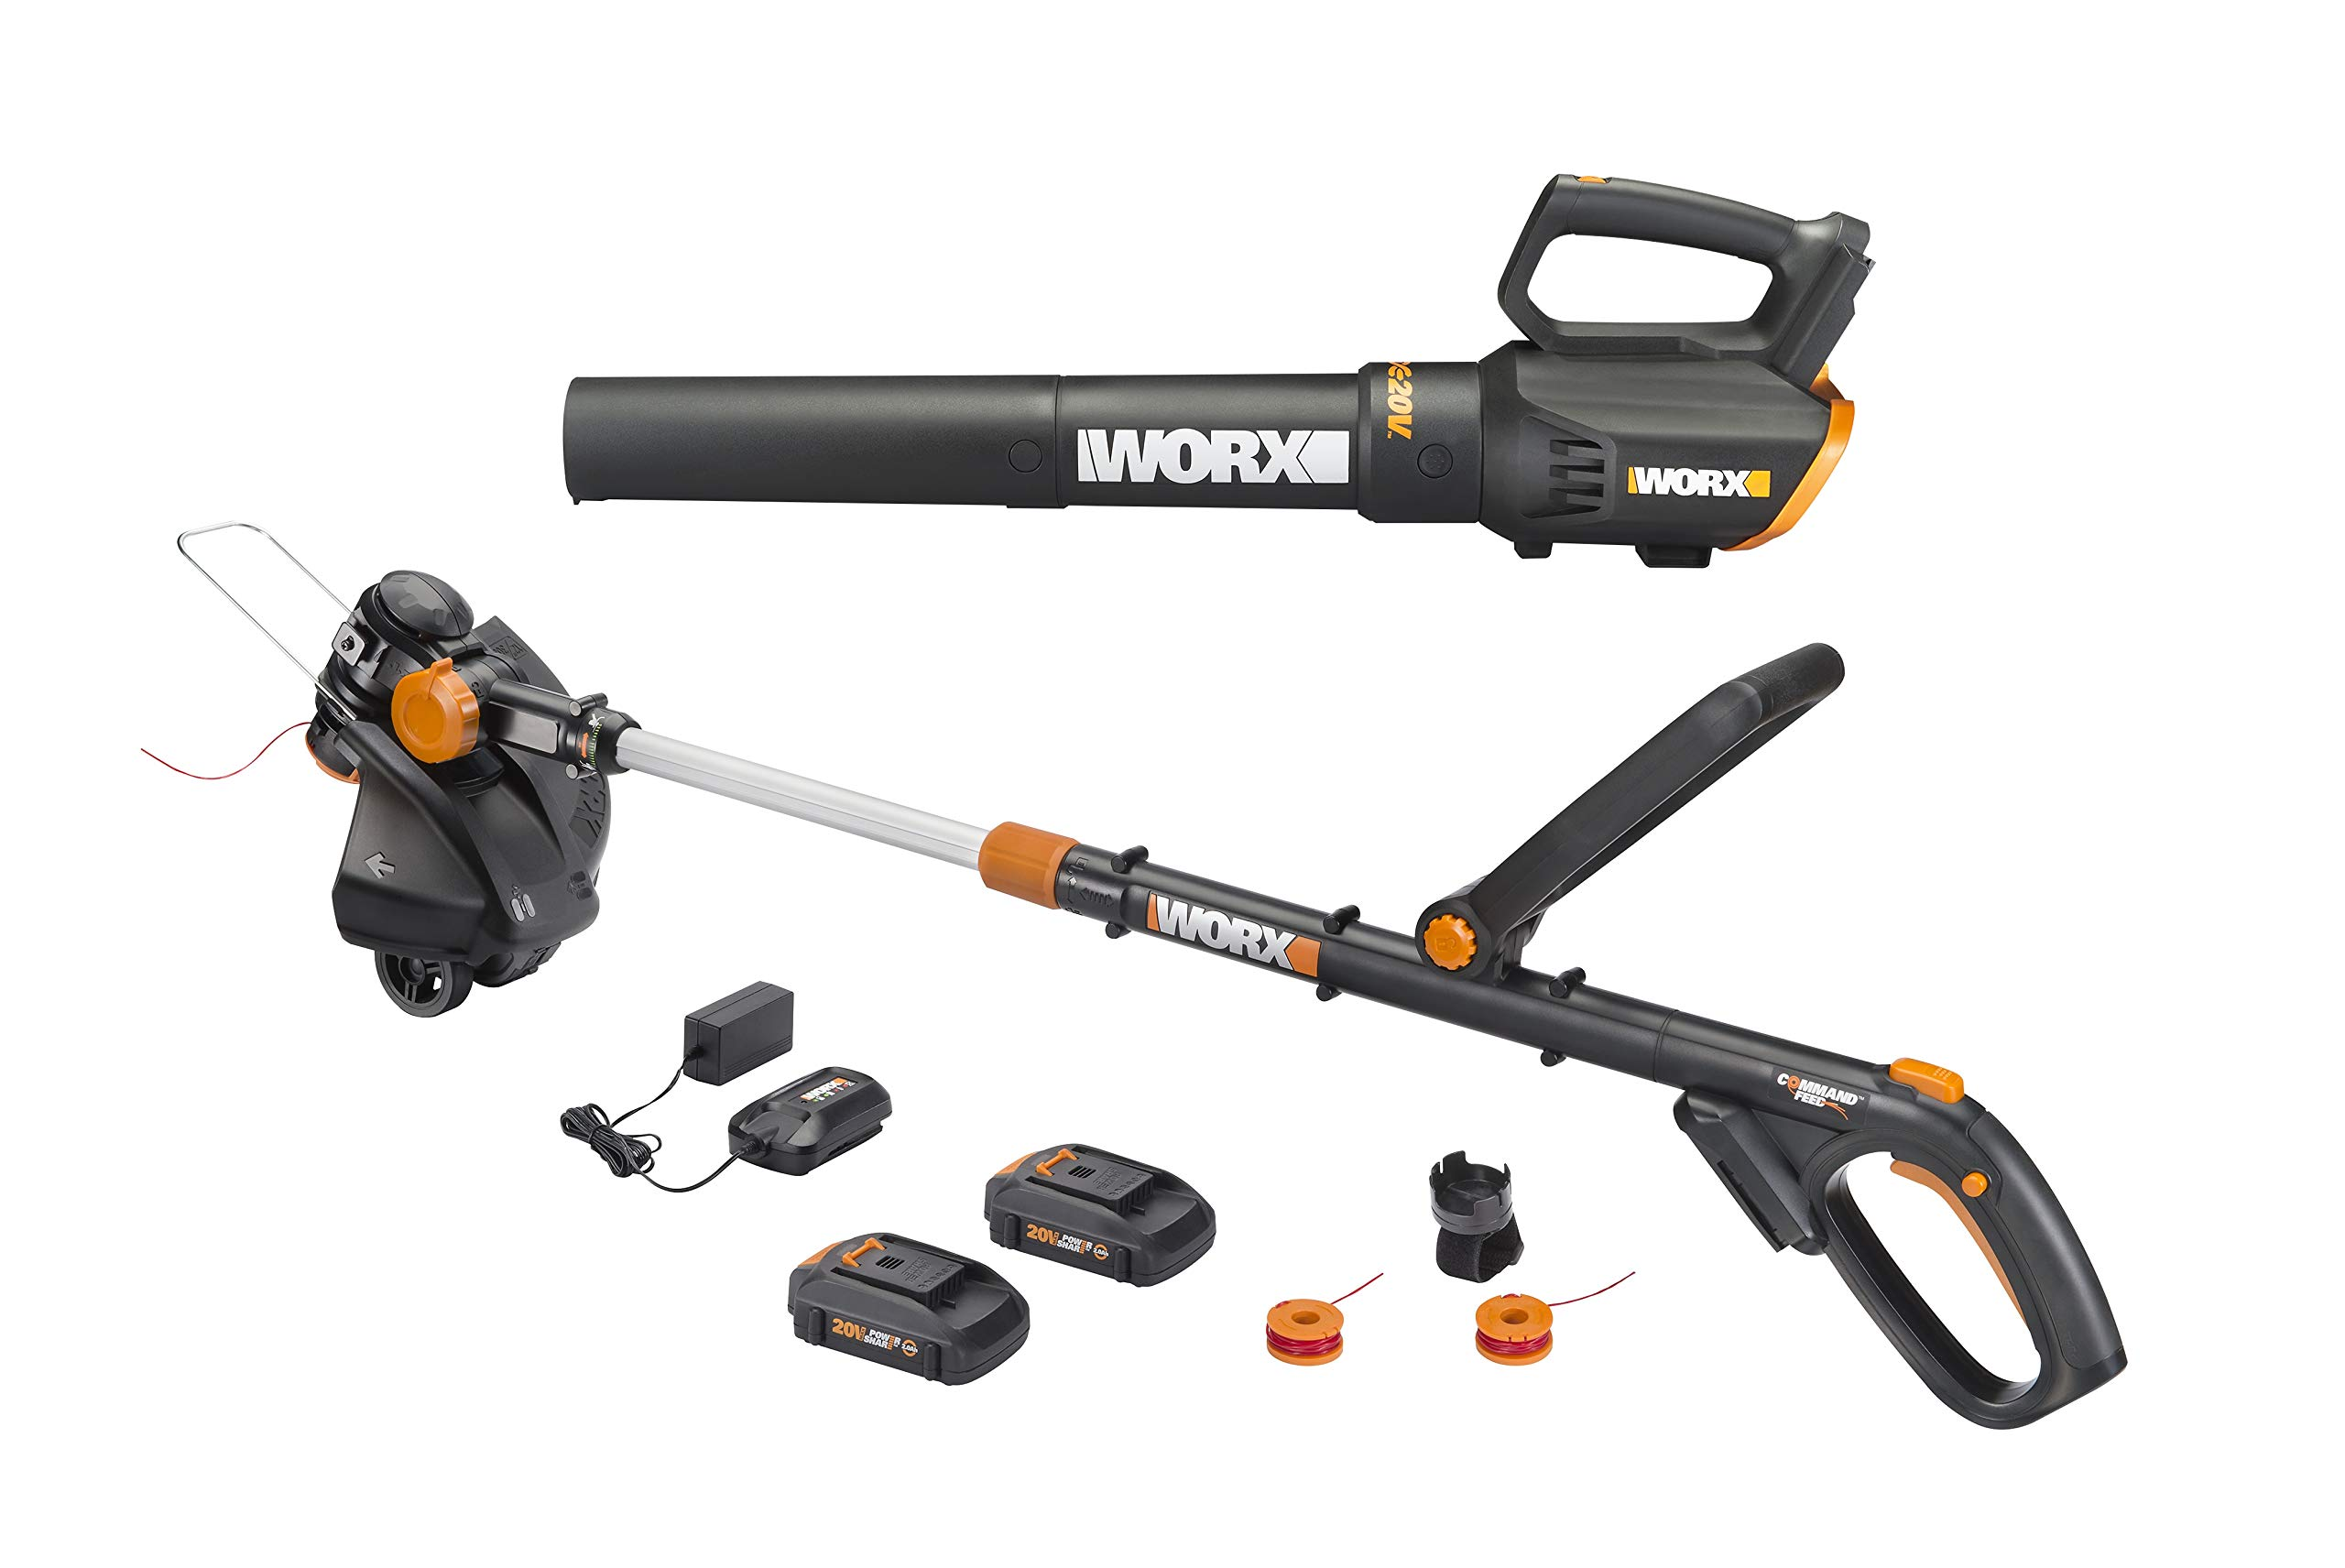 Worx WG930 20V 10'' Cordless String Trimmer & TURBINE Blower Combo Kit, 2 Batteries and 1-Hr Charger